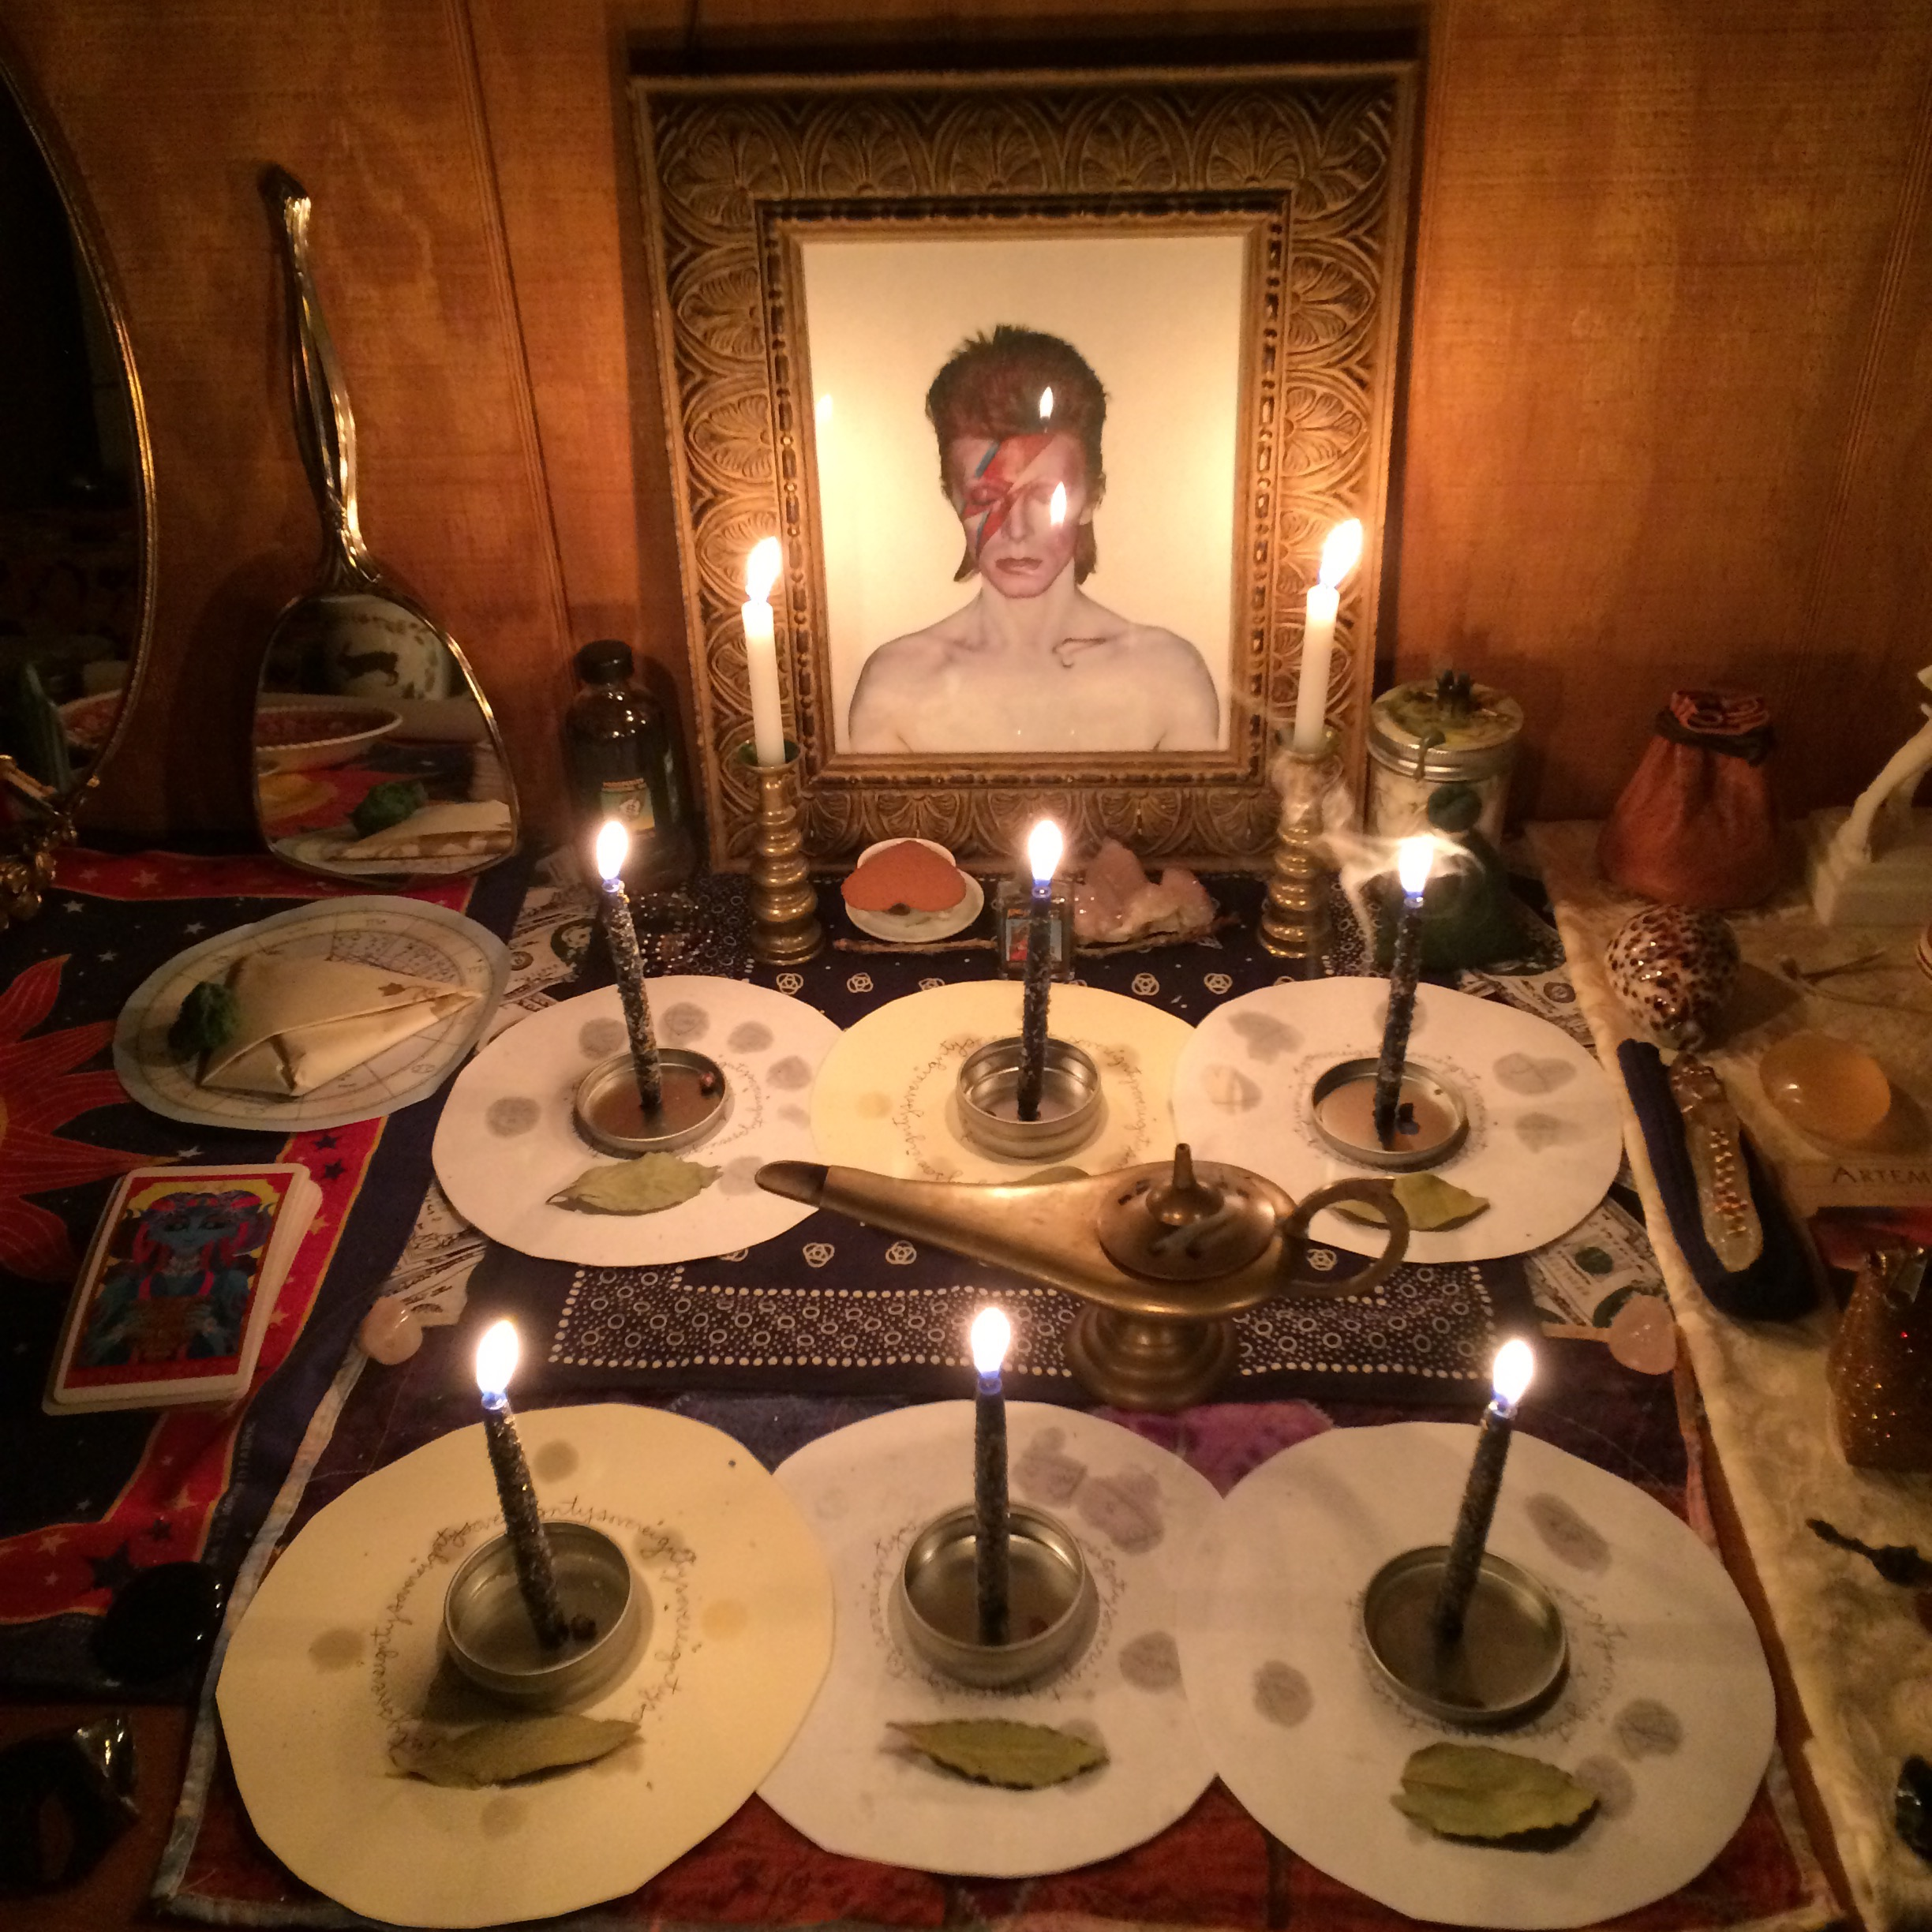 a frame picture of david bowie as aladdin sane with six small candles burning before it each on top of a round paper astrology chart